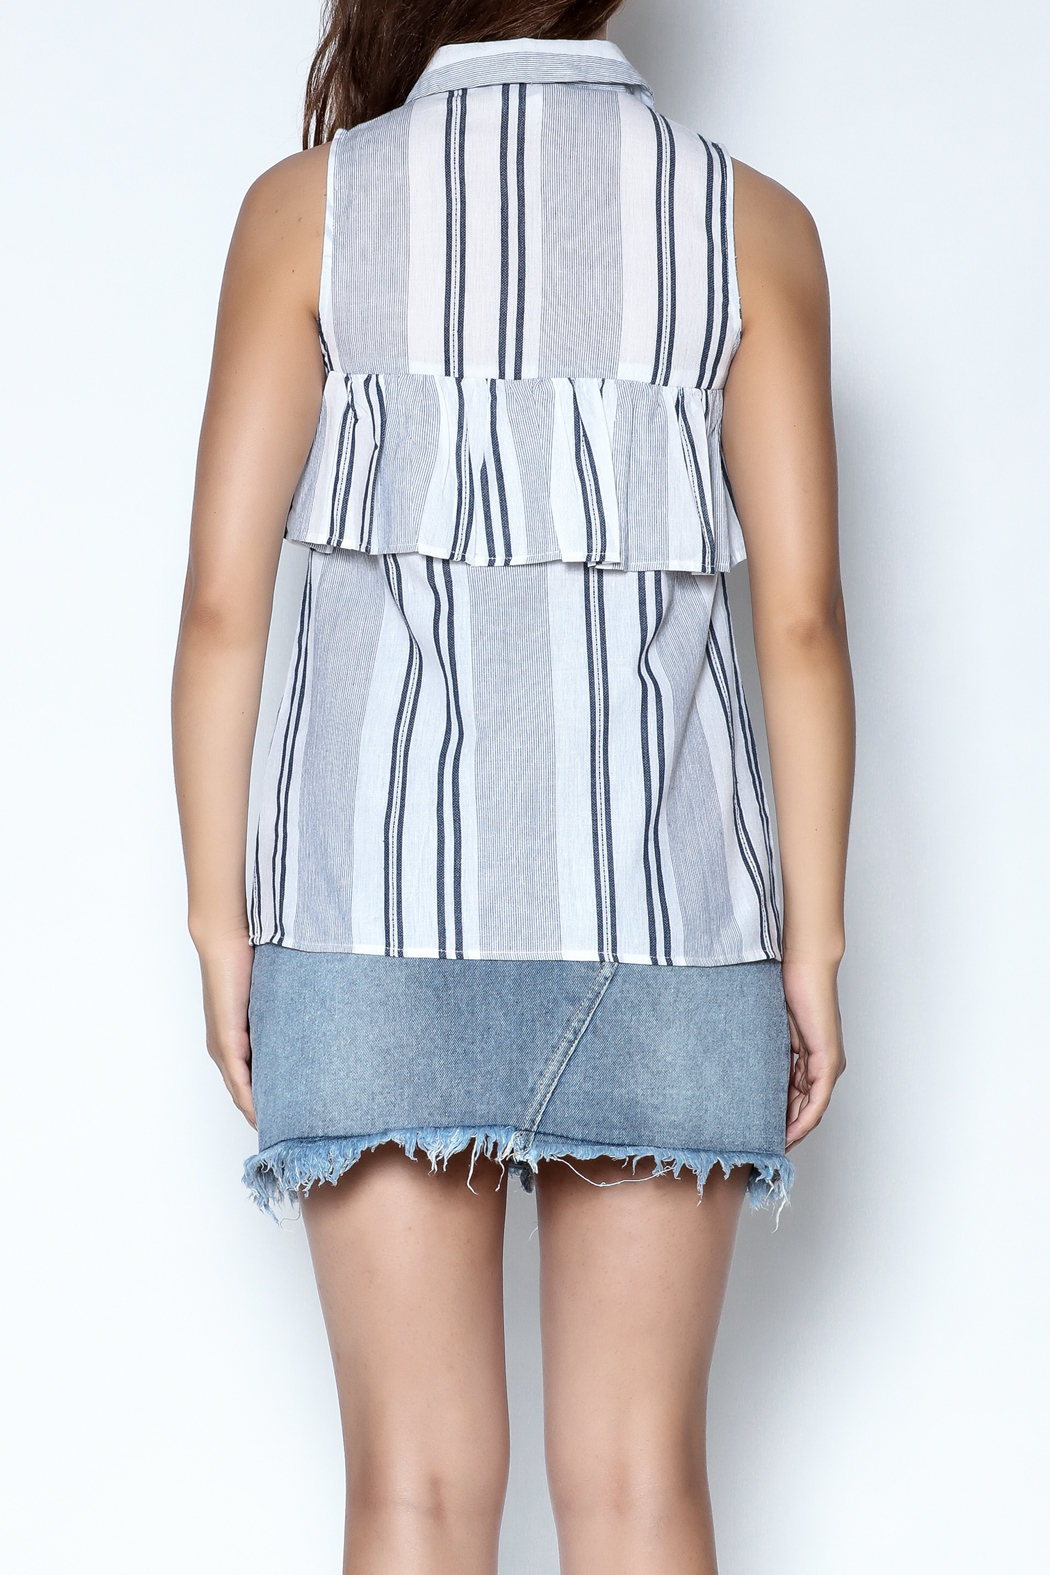 Olive + Oak Striped Max Top - Back Cropped Image